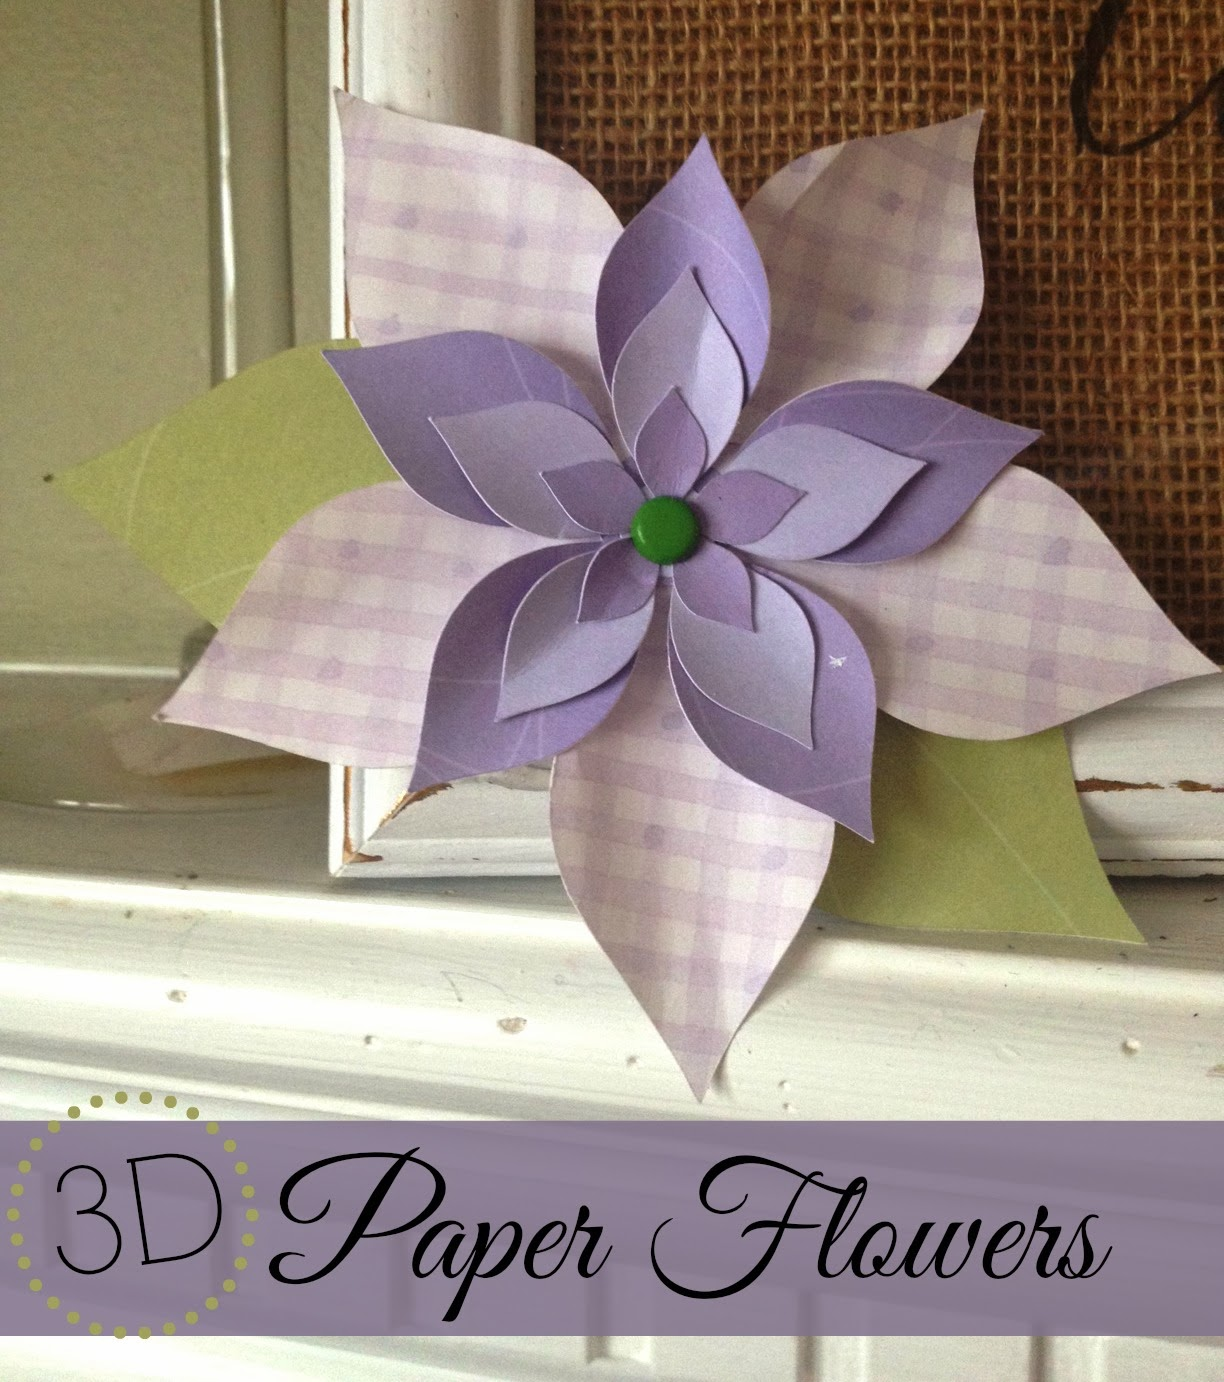 http://silhouetteschool.blogspot.com/2014/03/how-to-make-3d-paper-flowers-easy-free.html